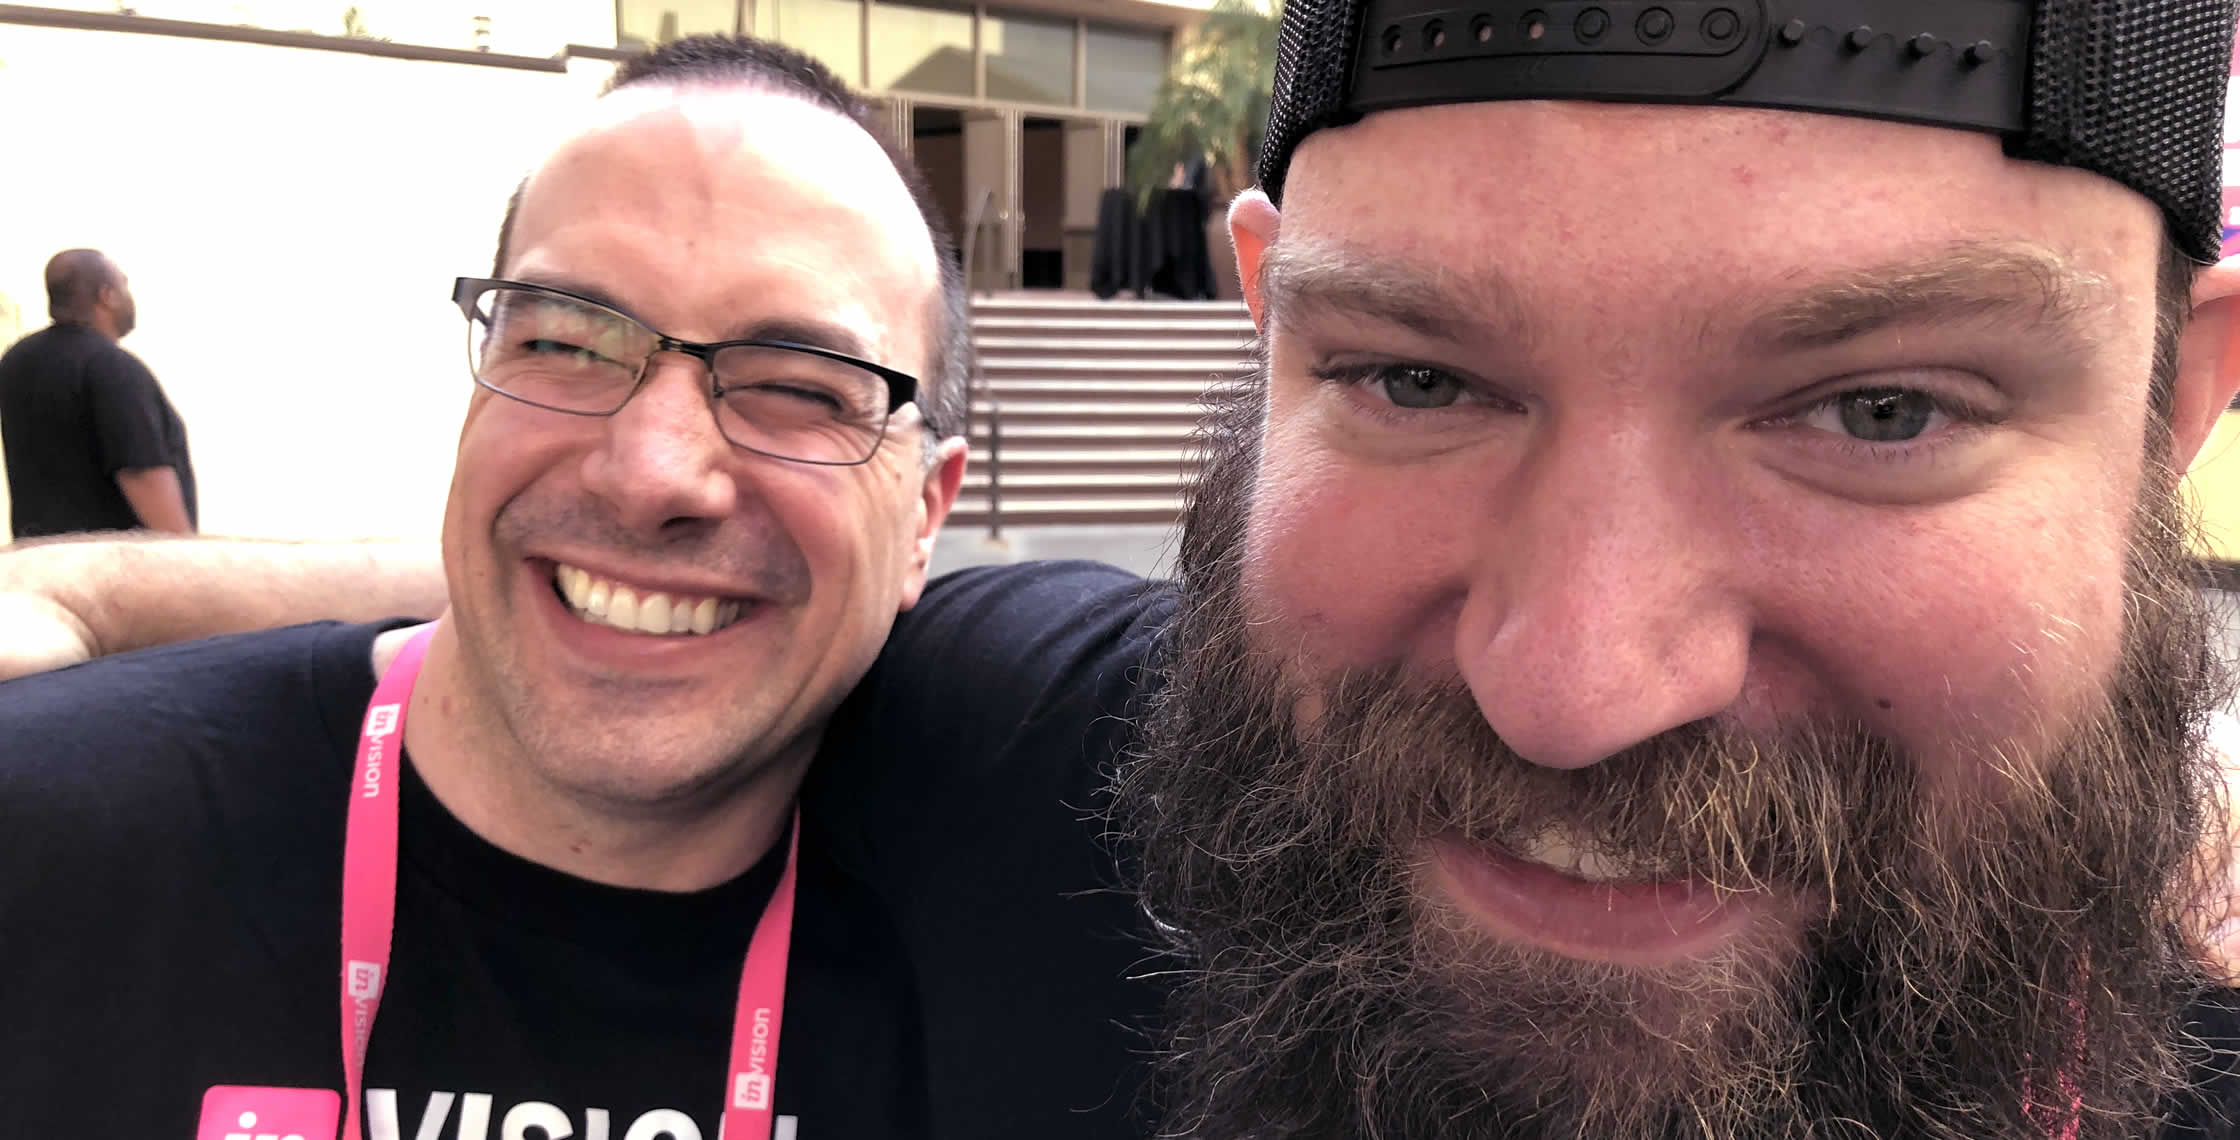 Ben Nadel at InVision In Real Life (IRL) 2018 (Hollywood, CA) with: Jesse Dearing